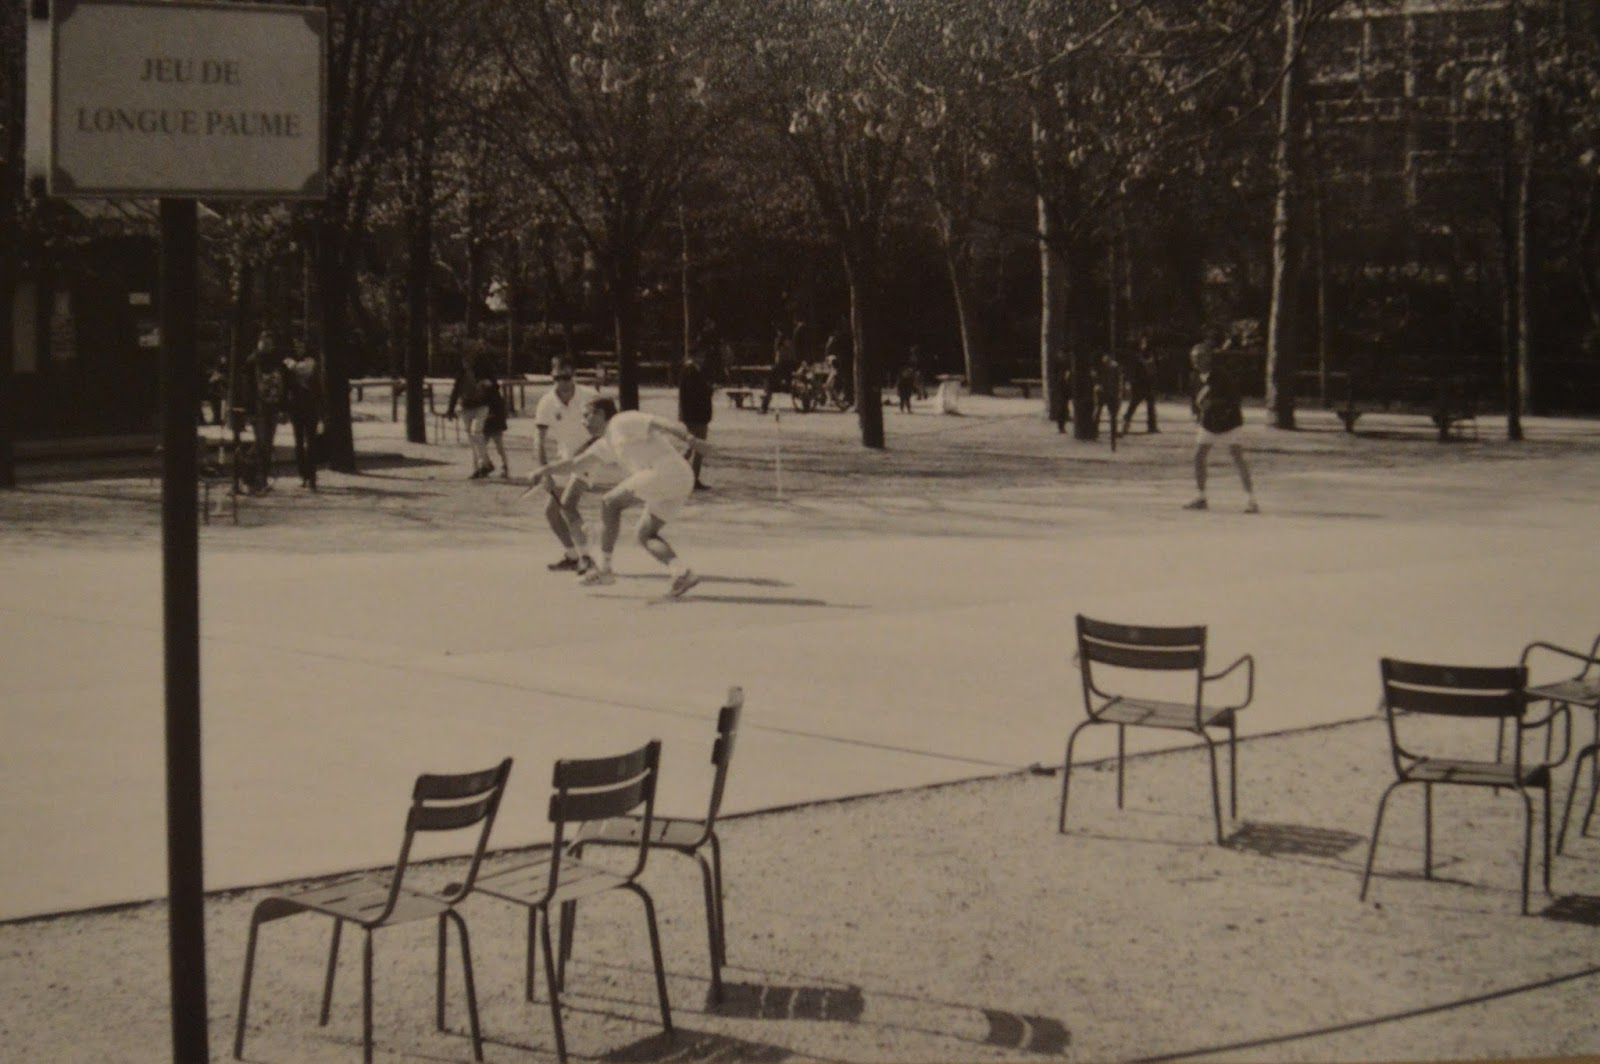 Photography: Jeu de Longue Paume in Luxembourg gardens, Paris